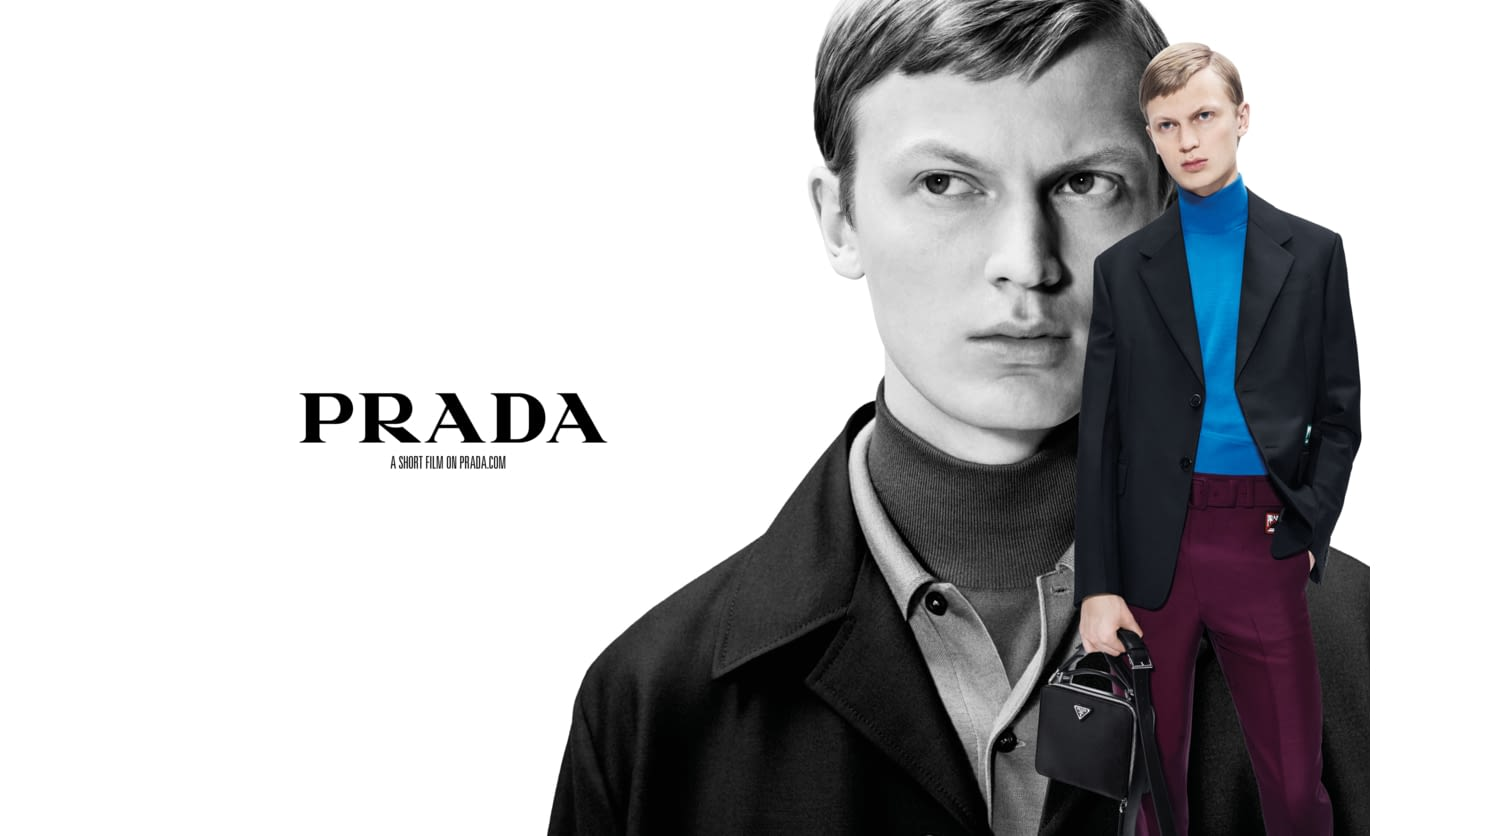 Prada Menswear SS19 Advertising Campaign_01.jpg